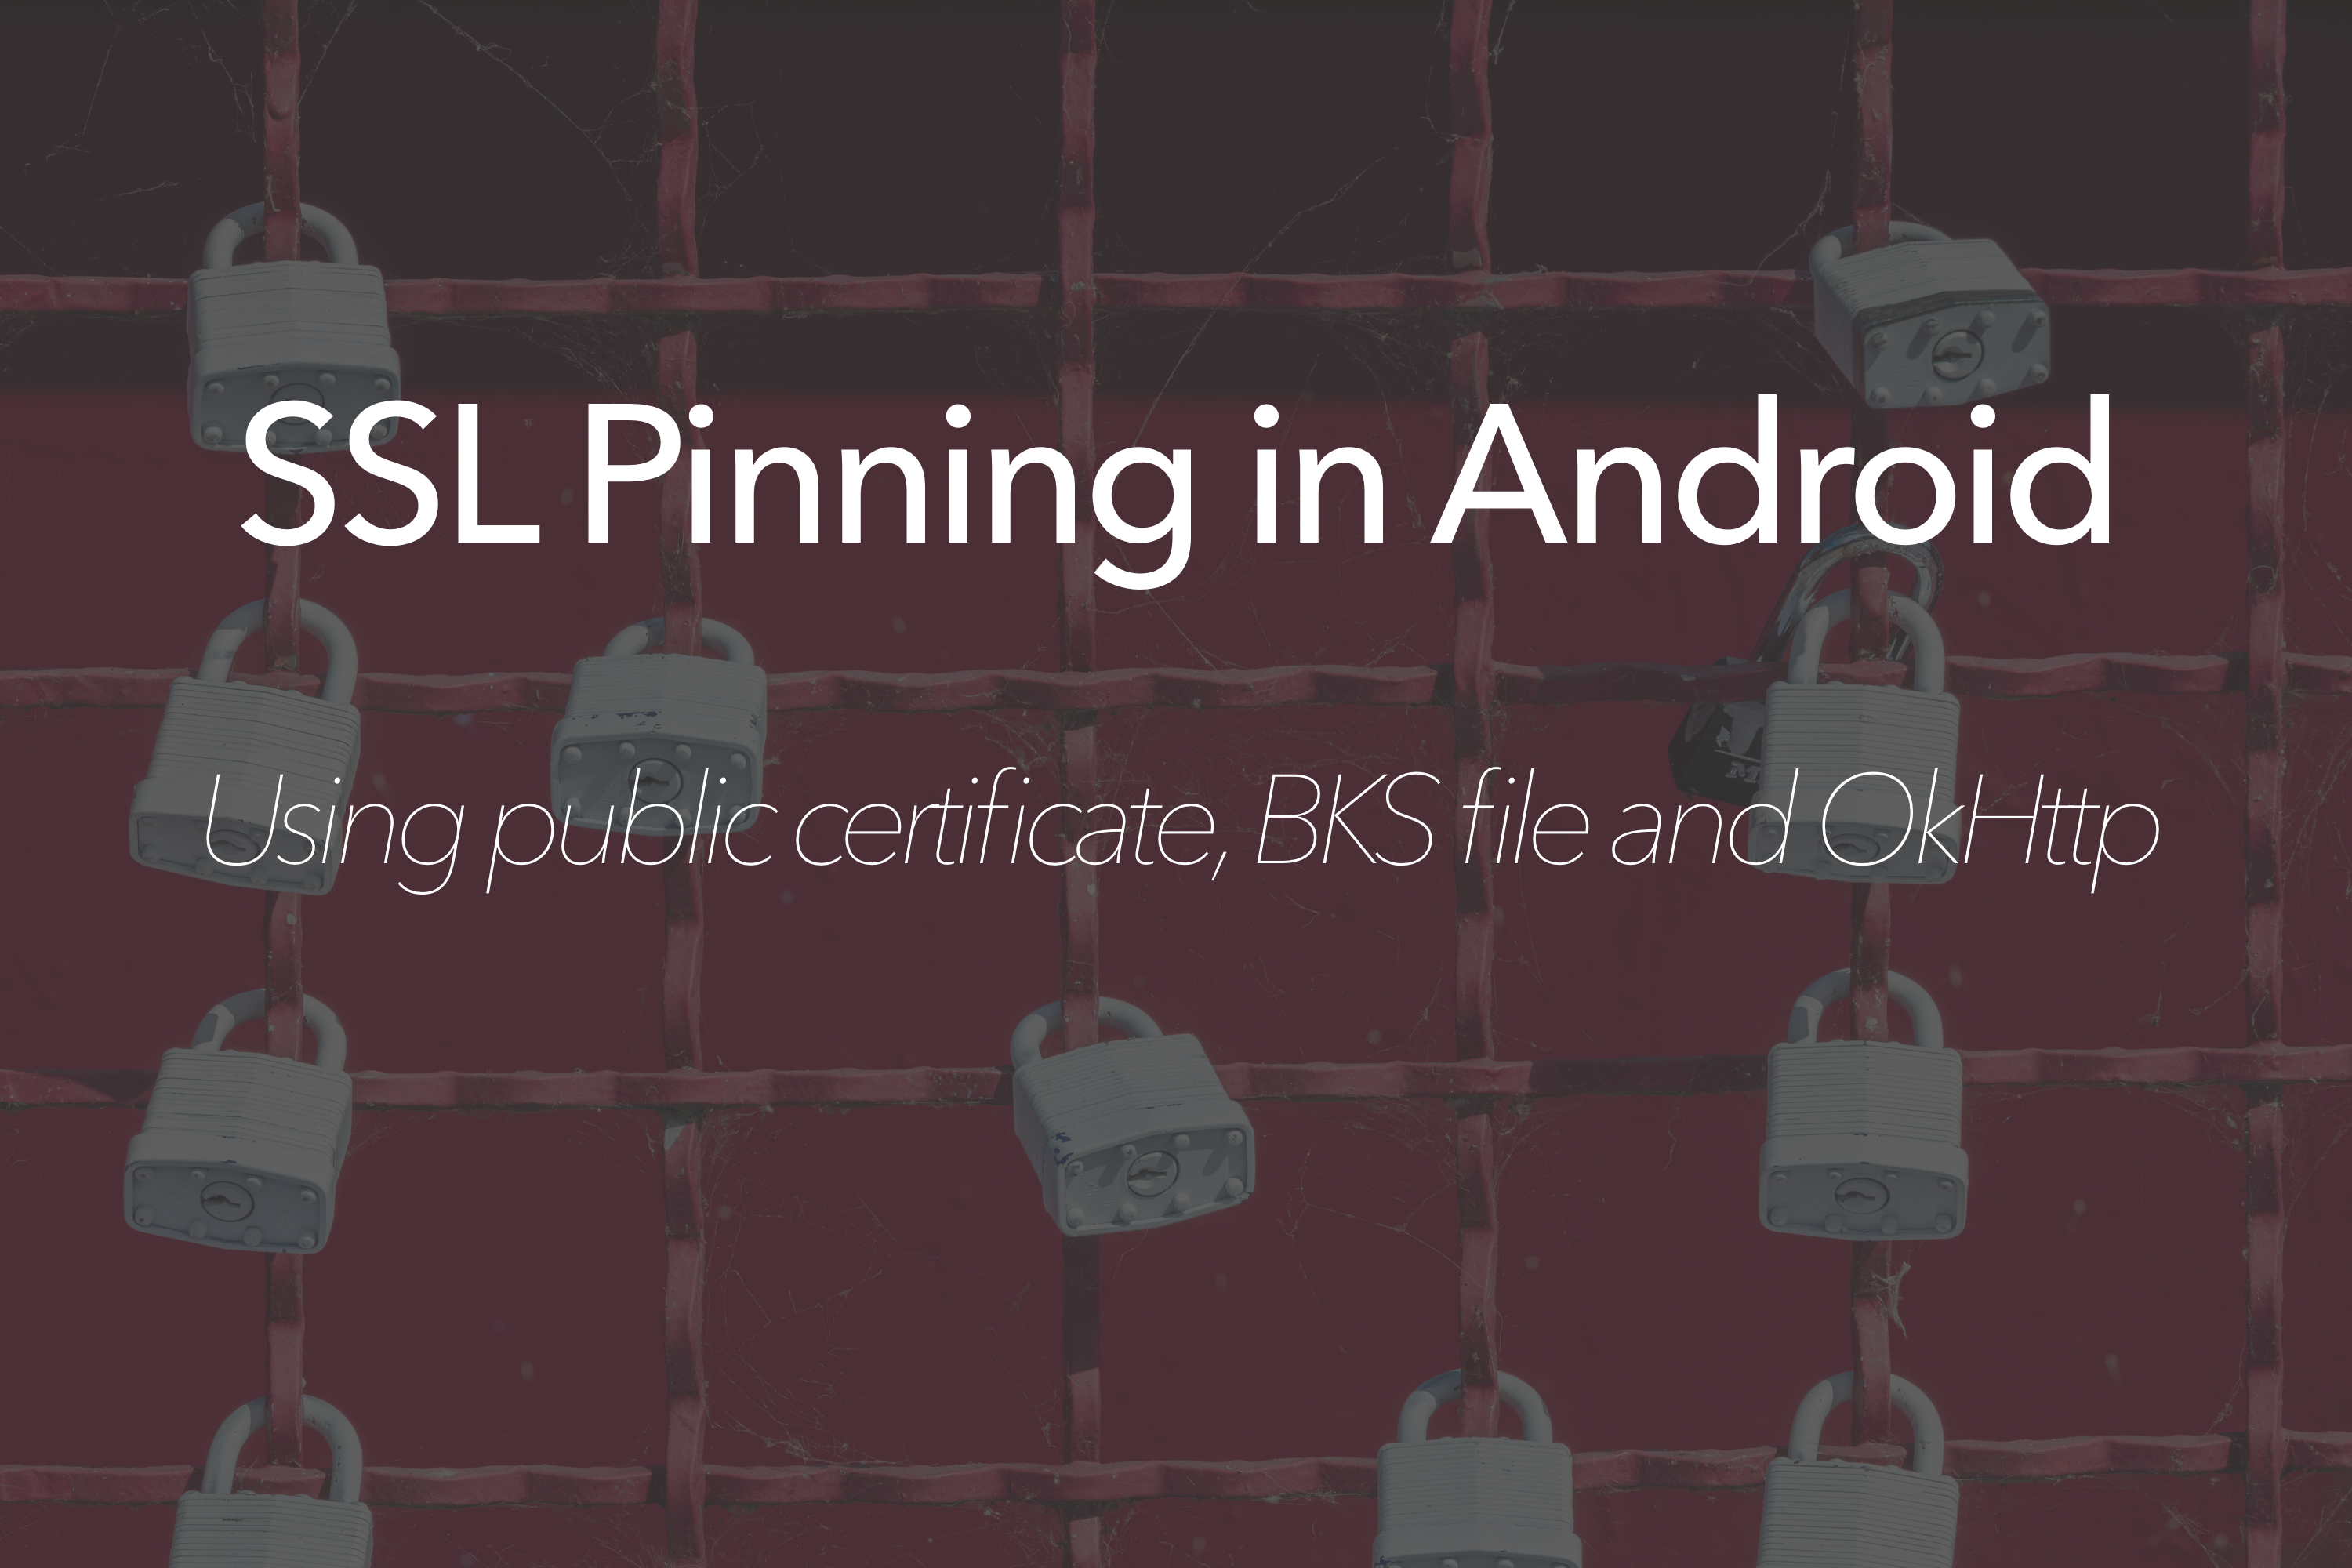 SSL pinning in Android : Using public certificate and BKS file